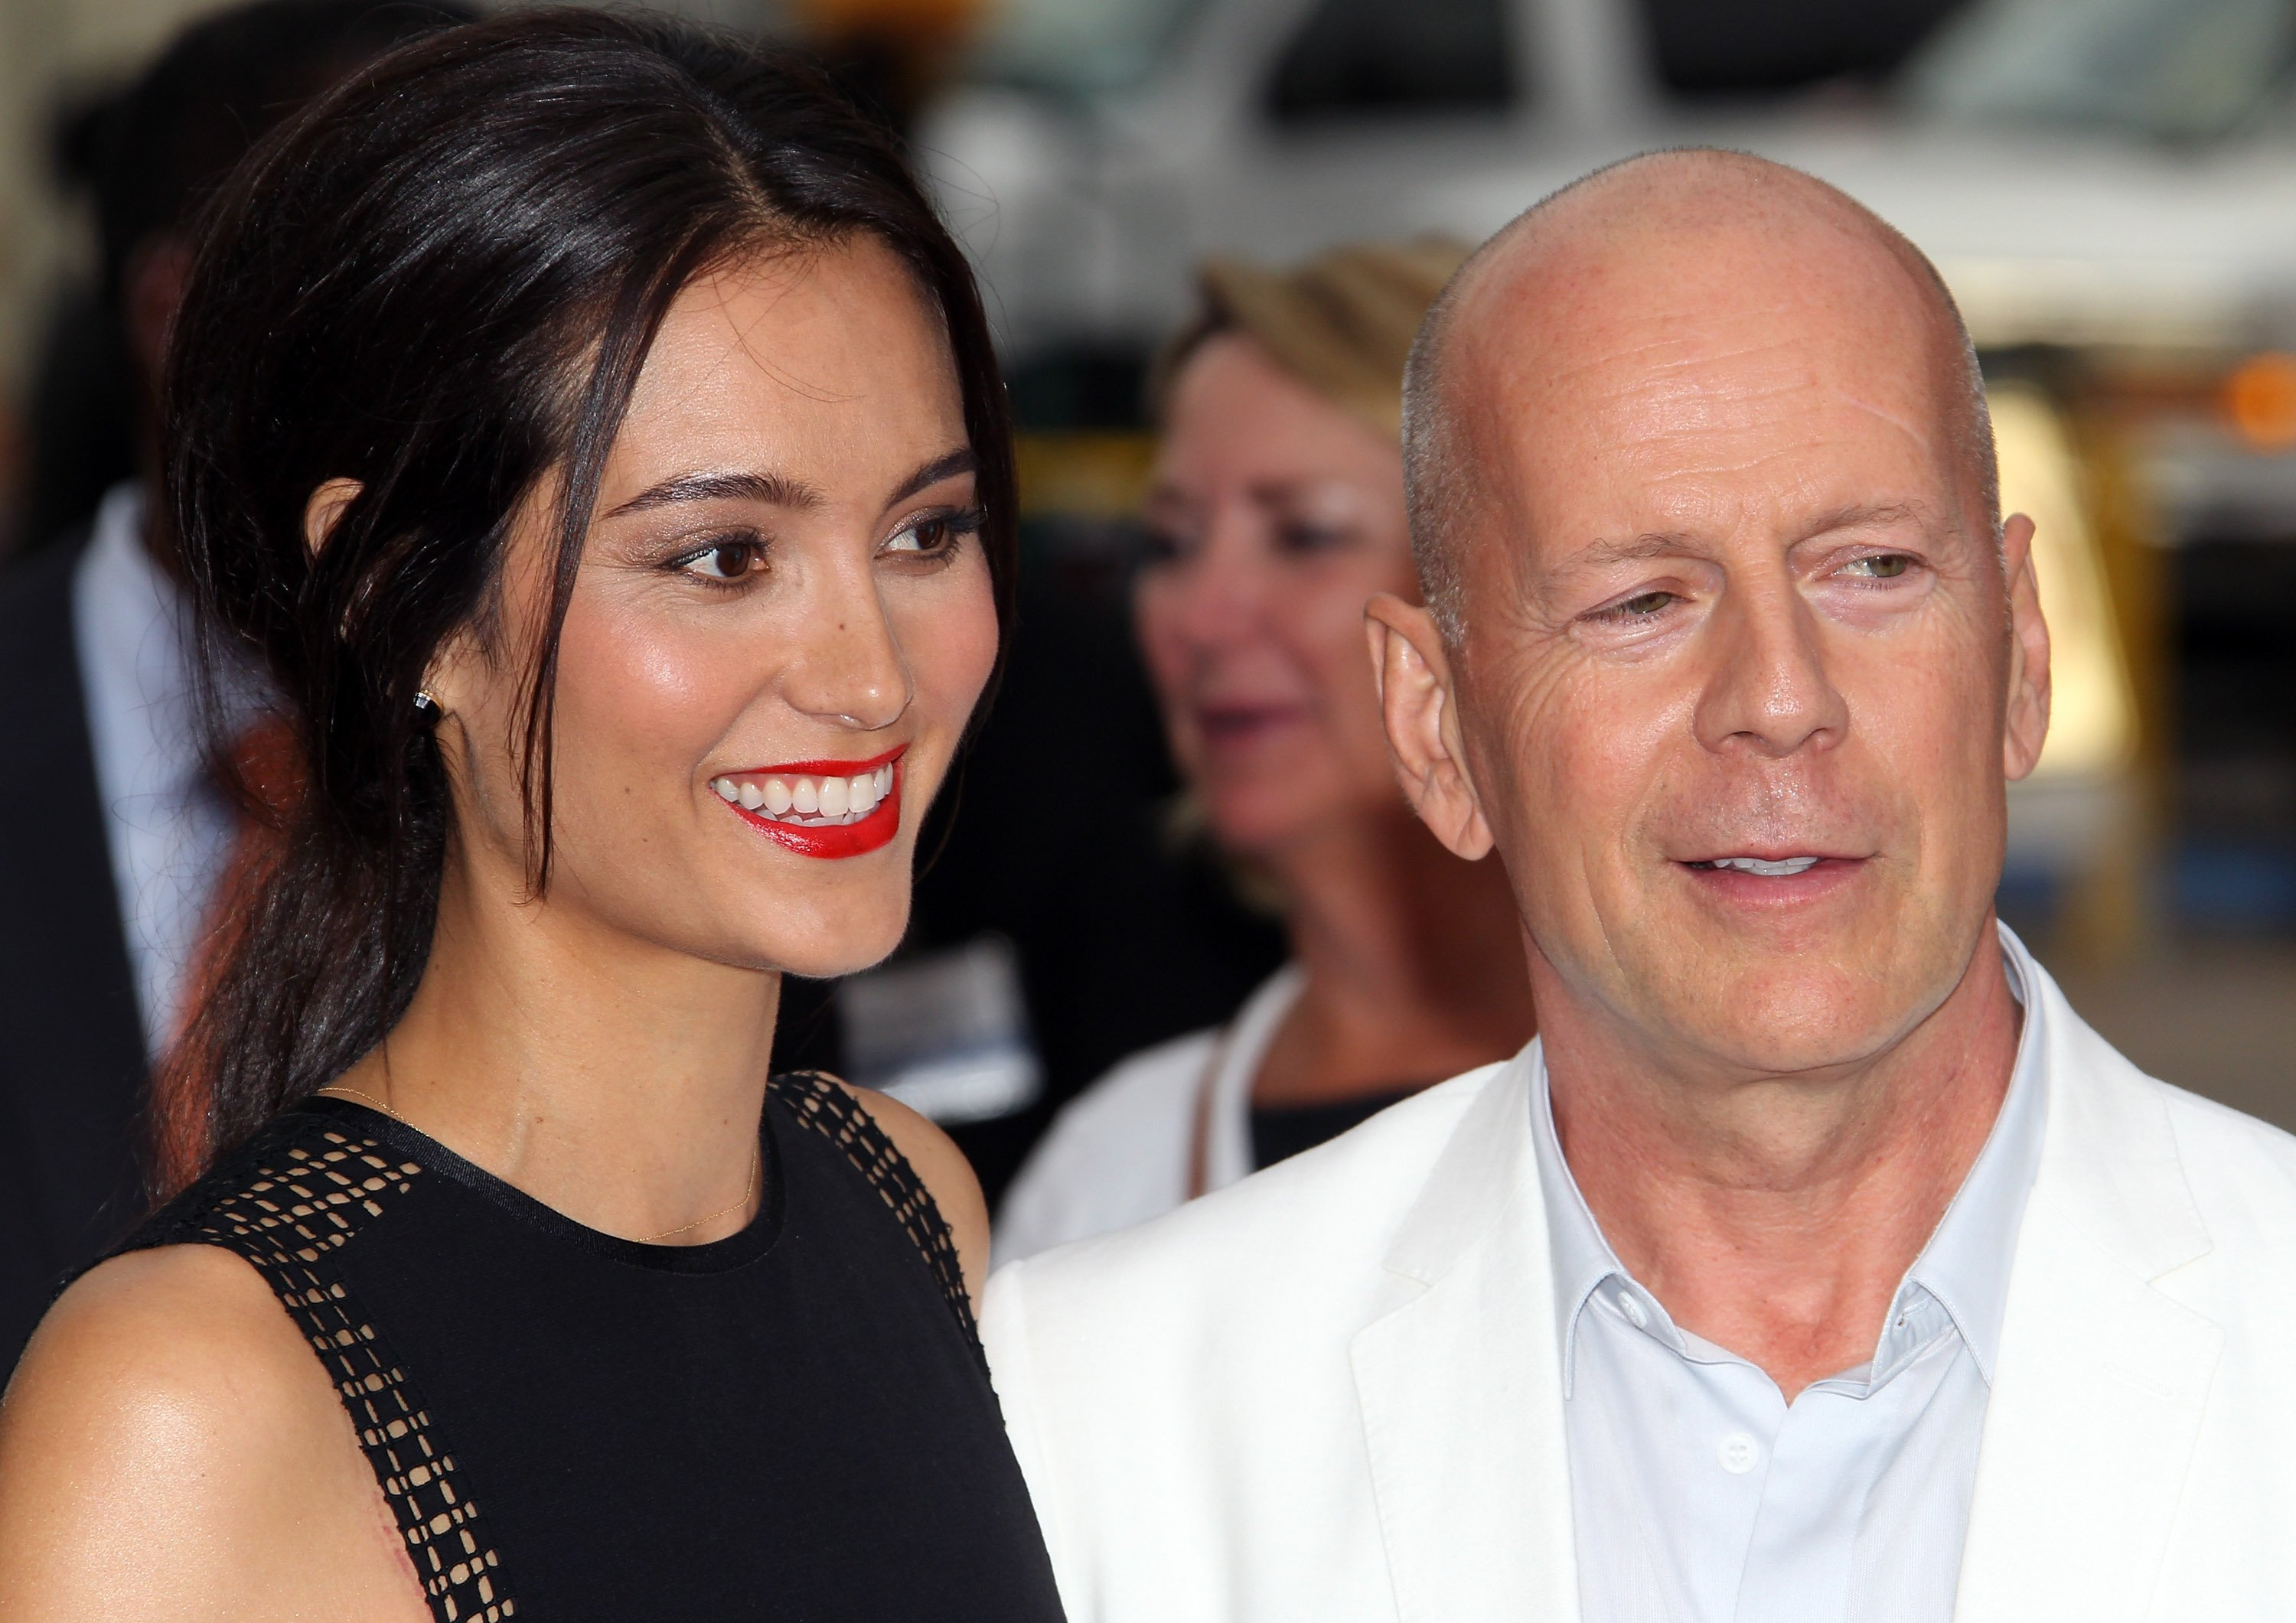 """Emma Heming Willis (L) and husband actor Bruce Willis attend the premiere of Summit Entertainment's """"RED 2"""" at Westwood Village on July 11, 2013, in Los Angeles, California. 